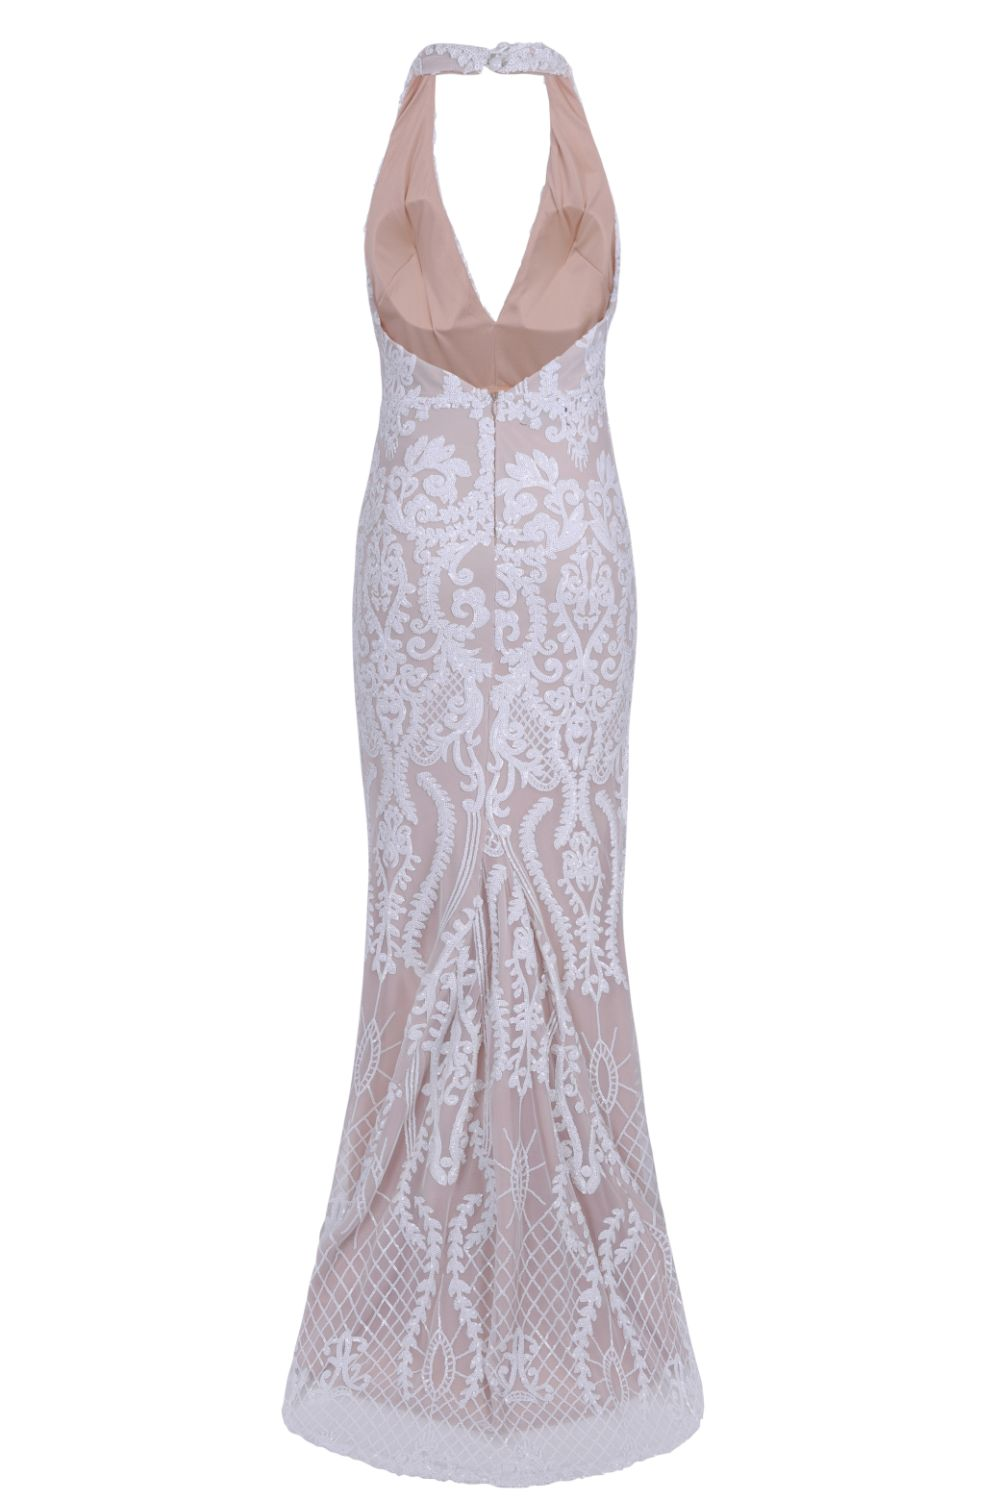 Aaliyah White Nude Halterneck Floral Sequin Embellished Maxi Fishtail Dress